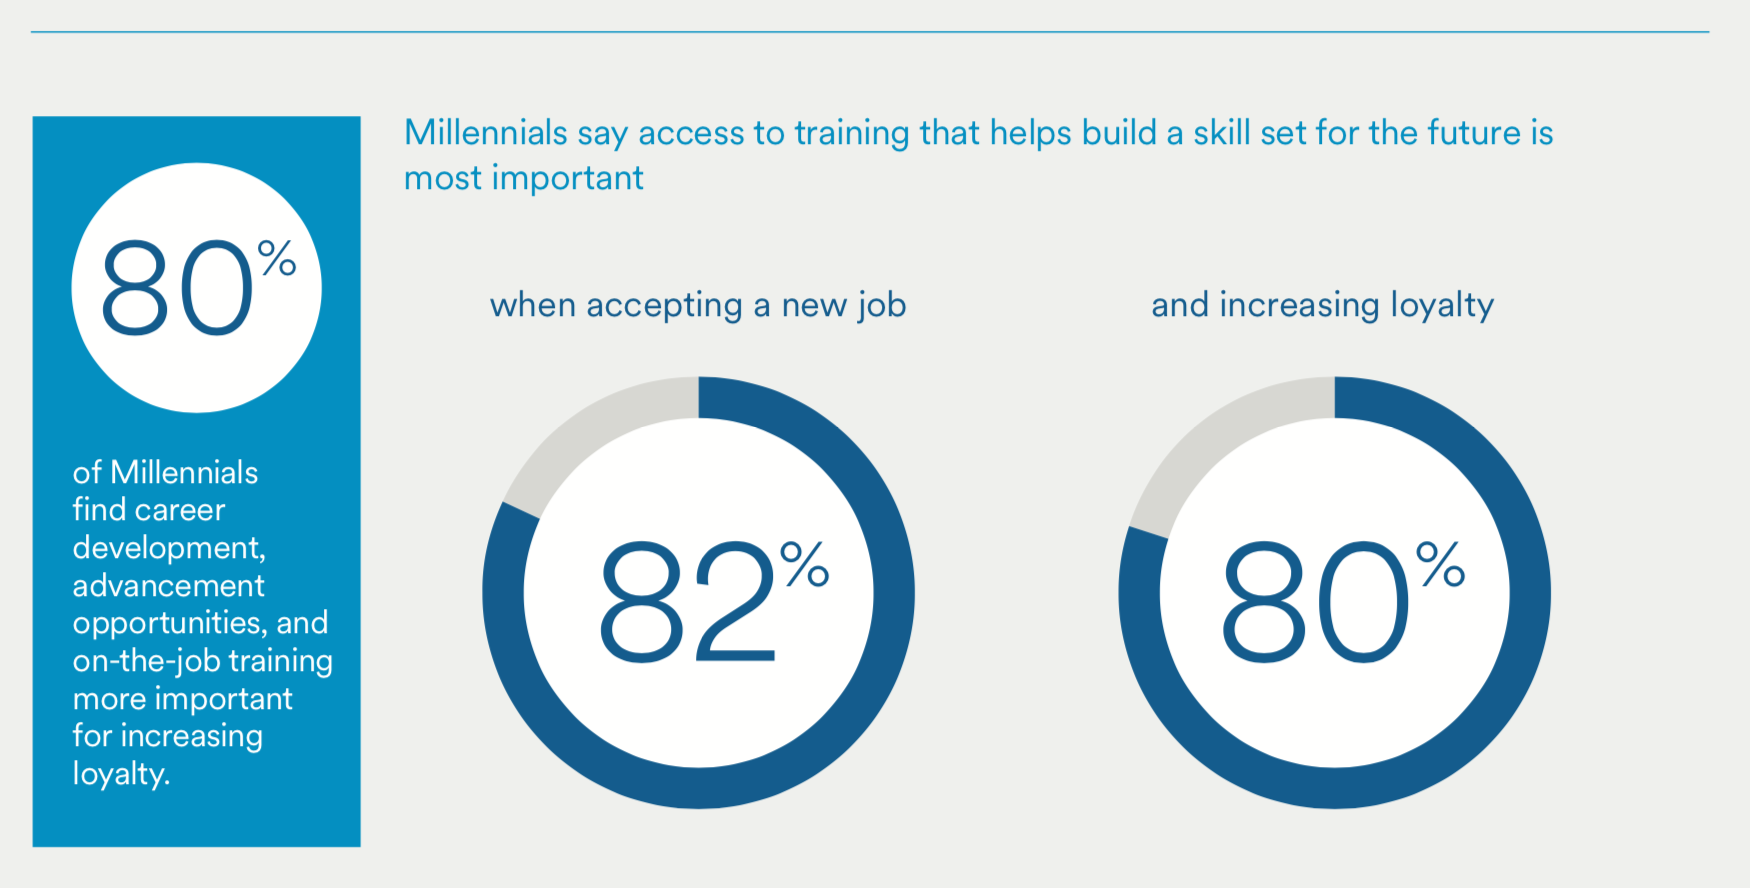 80% of millennials say access to training that helps build a skill set for the future is most important